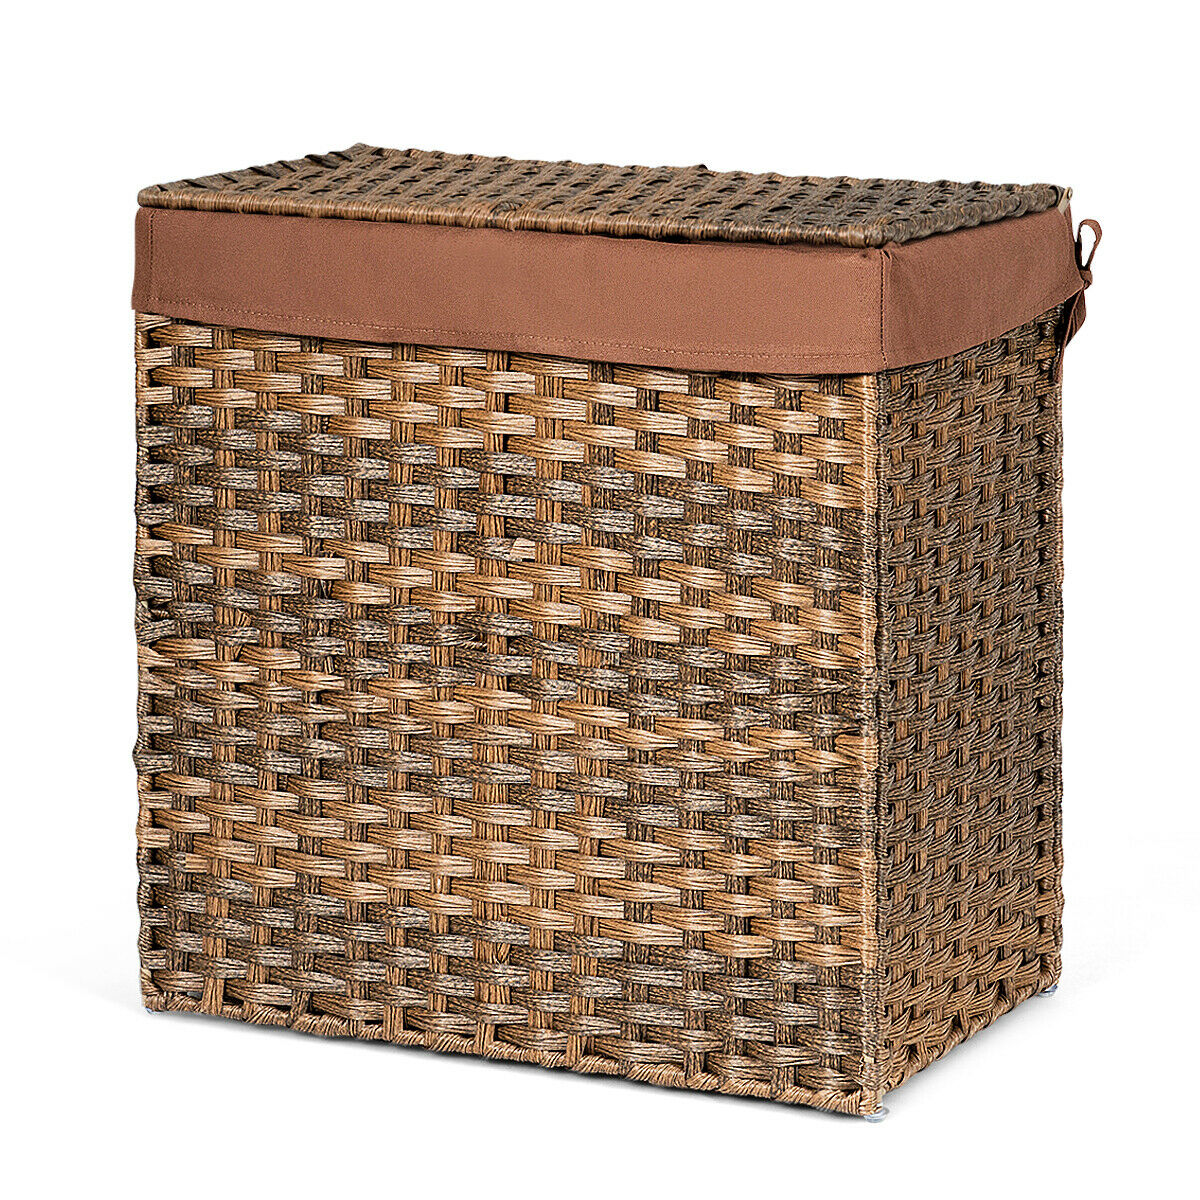 Hand Woven Laundry Basket Foldable Rattan Laundry Hamper W Removable Bag Brown For Sale Online